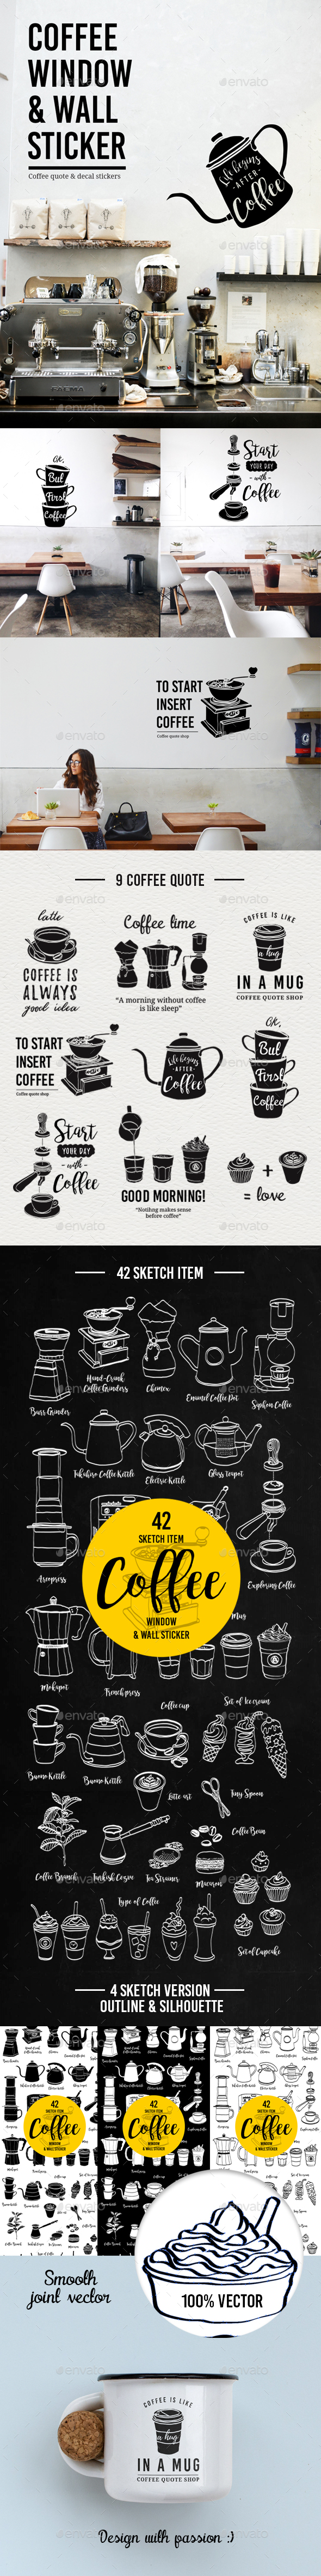 Coffee window and wall stickers by bnimit graphicriver coffee window and wall stickers food objects amipublicfo Images